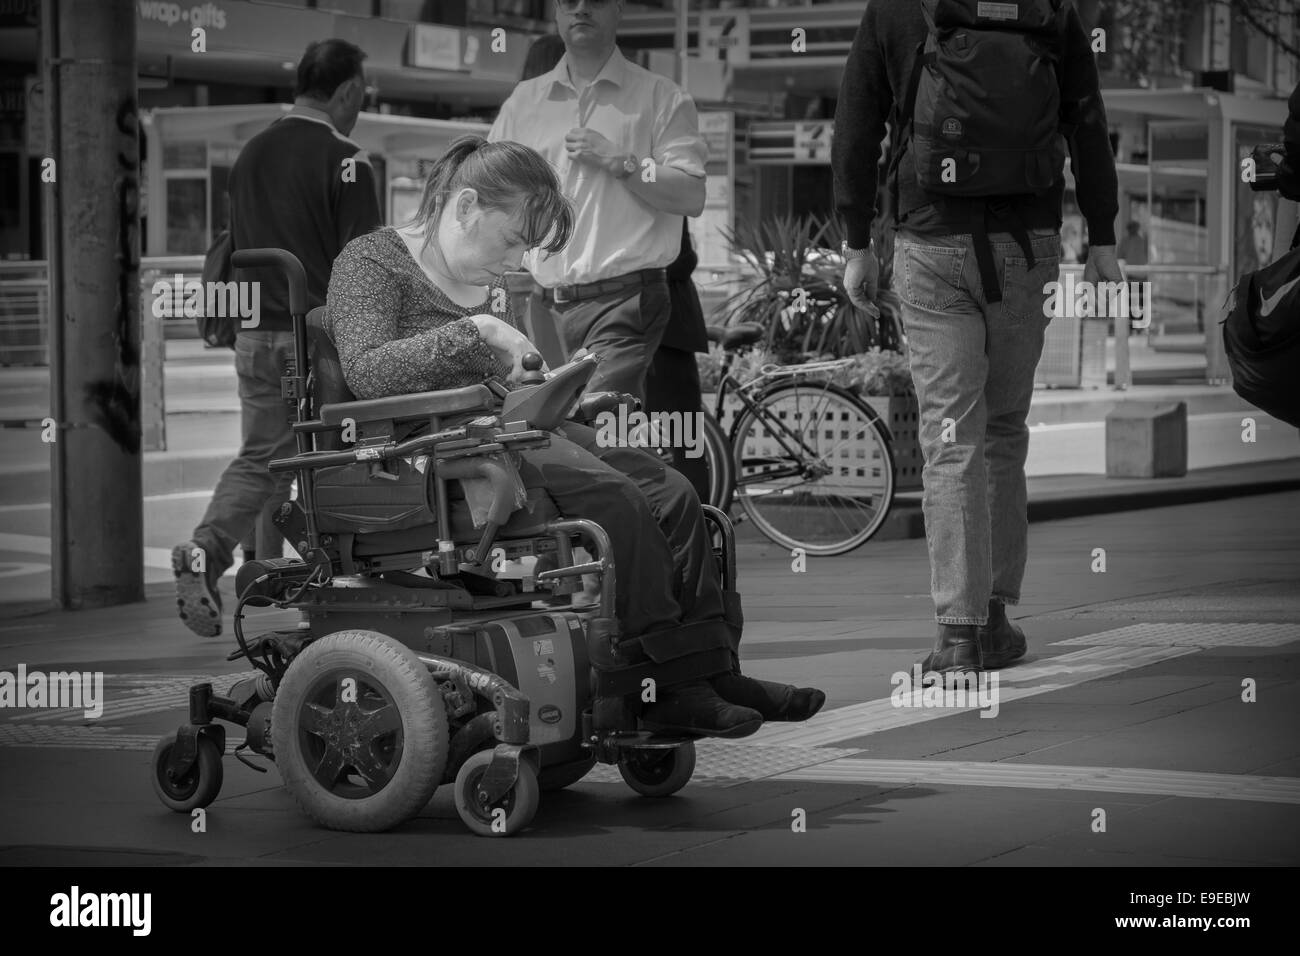 Disabled Woman In Electric Wheelchair - Stock Image